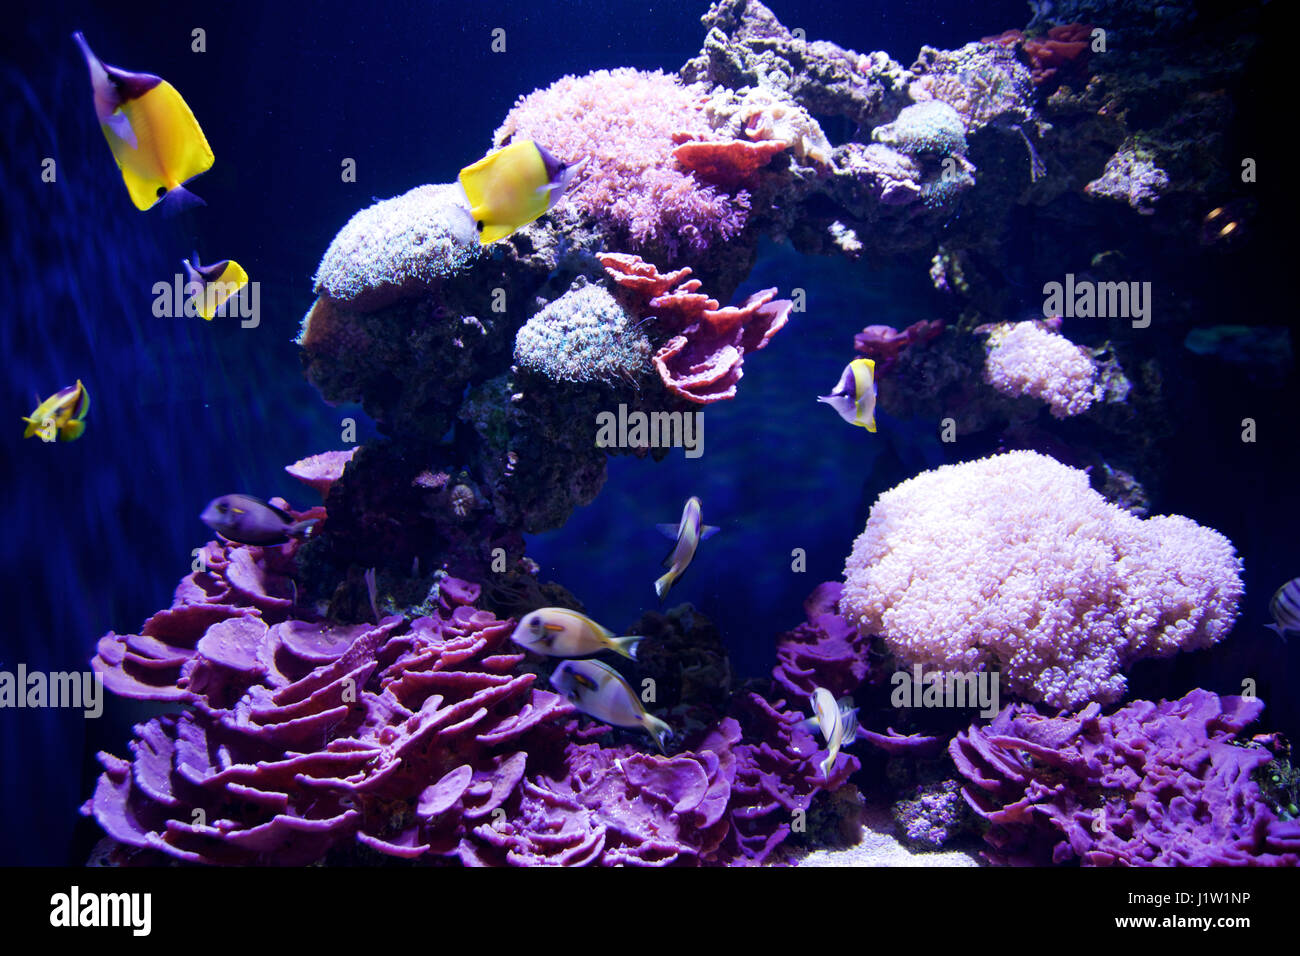 Seattle washington usa jan 25th 2017 exotic coral for Jan s tropical fish